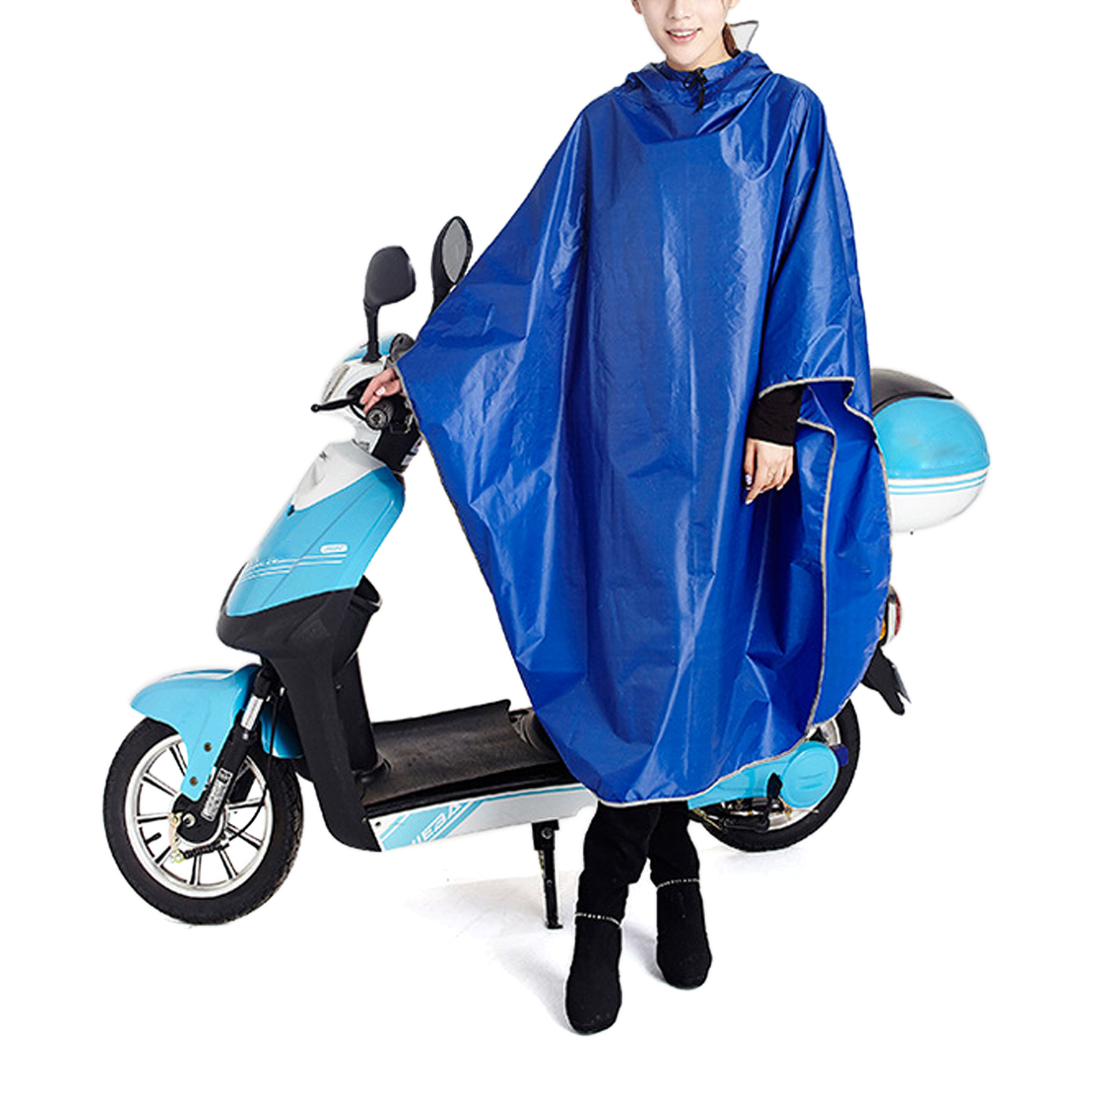 Click here to buy Blue Adult Poncho Cycling Raincoat Bicycle Hooded Waterproof Rain Coat Cover.